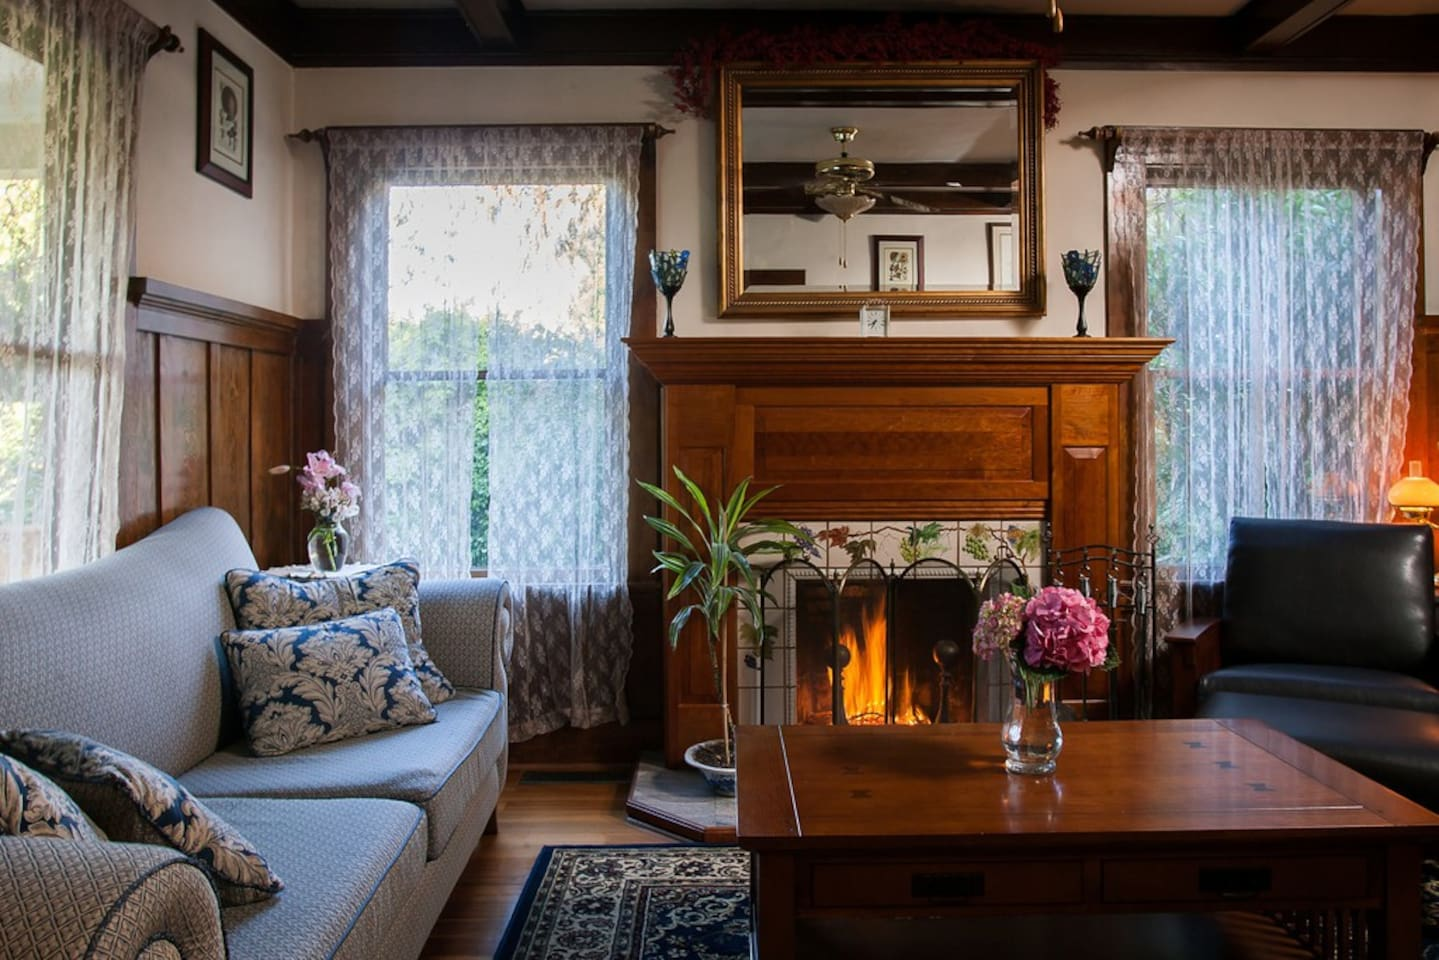 Enjoy a glass of wine by the fireplace in the parlor.